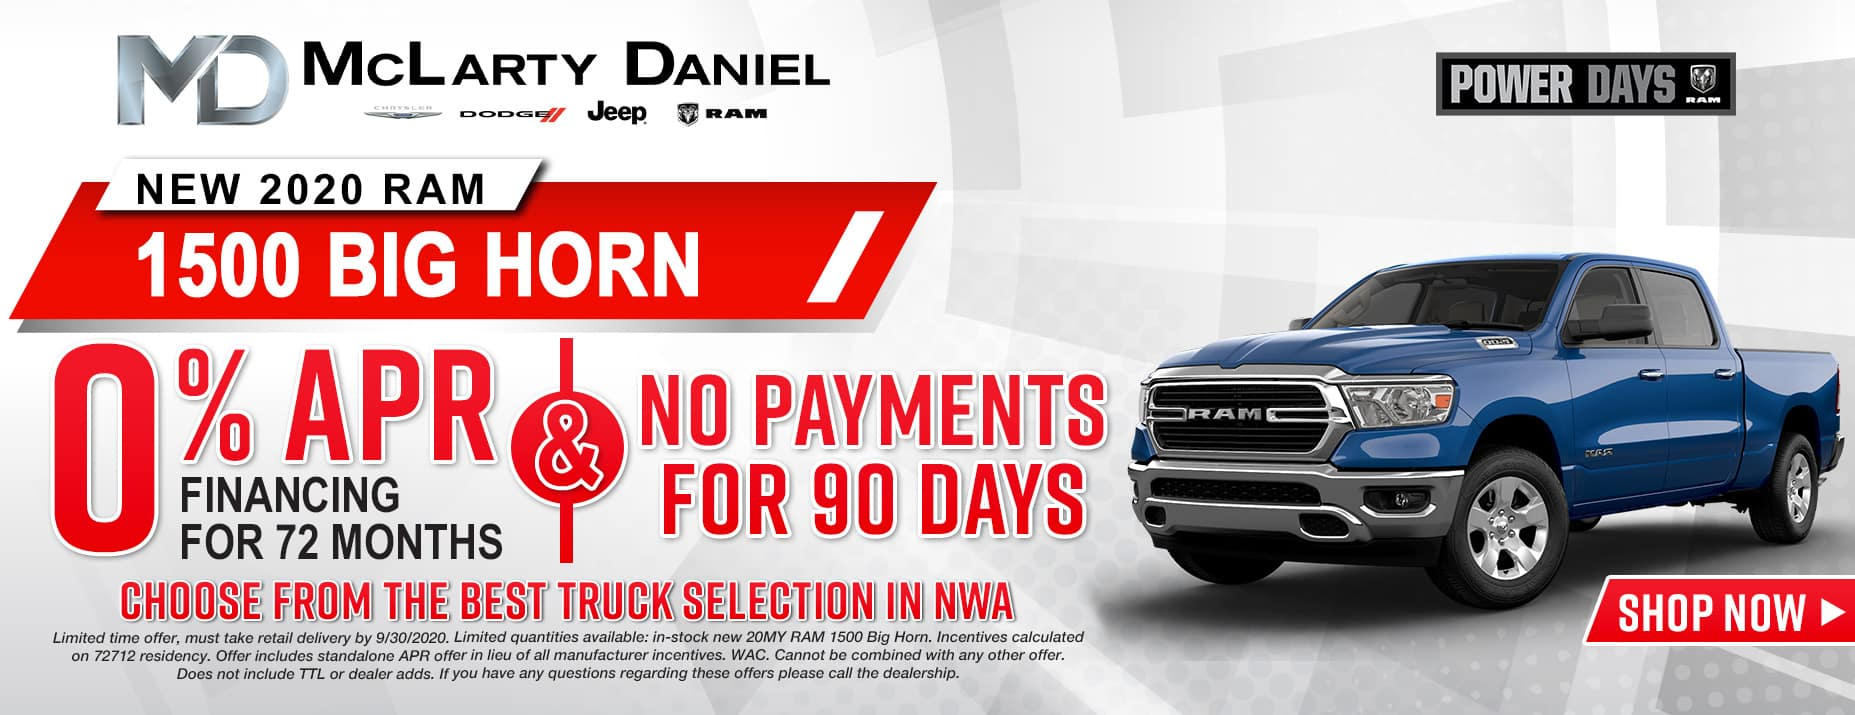 0% APR for 72 months and NO PAYMENTS FOR 90 DAYS available on 2020 RAM 1500 Big Horn! [CHOOSE FROM THE BEST TRUCK SELECTION IN NWA]